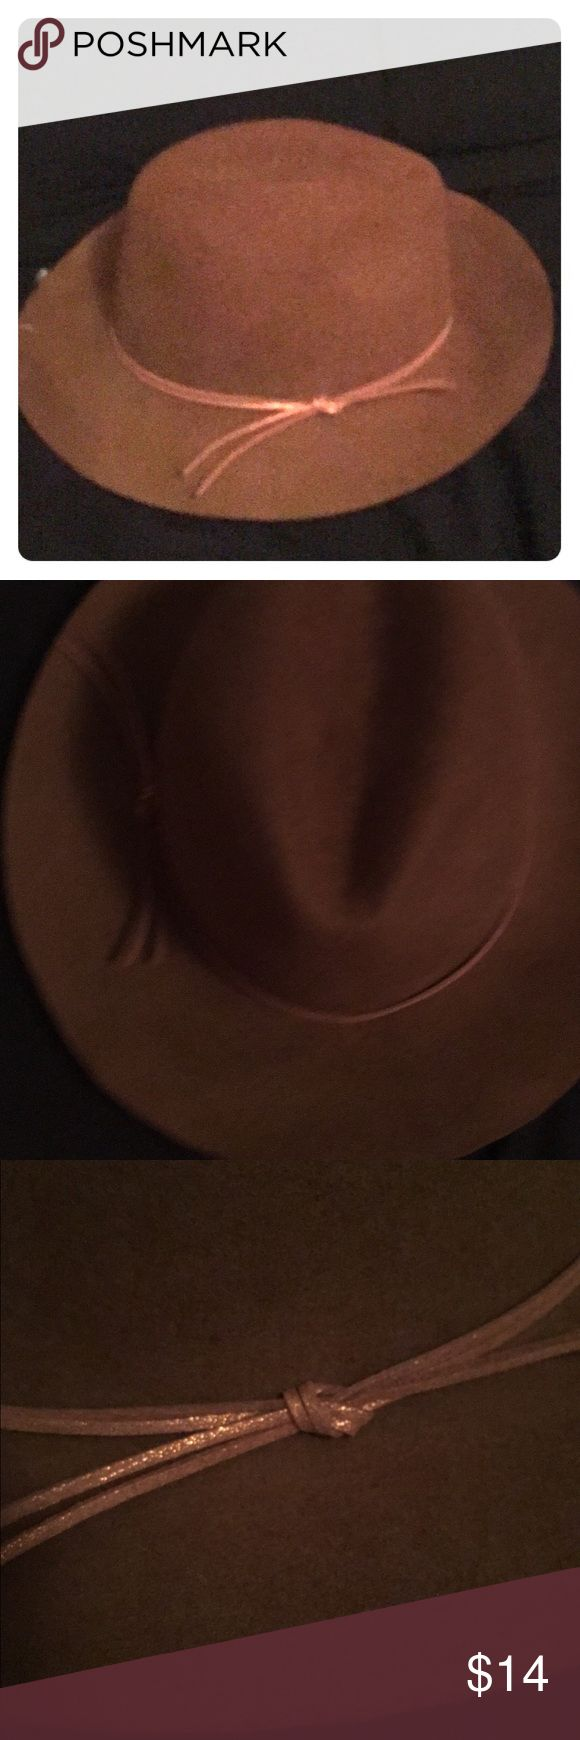 👒Brown Fedora NWT👒 Gorgeous felt fedora. Never worn comes with tags attached. Nine West Accessories Hats